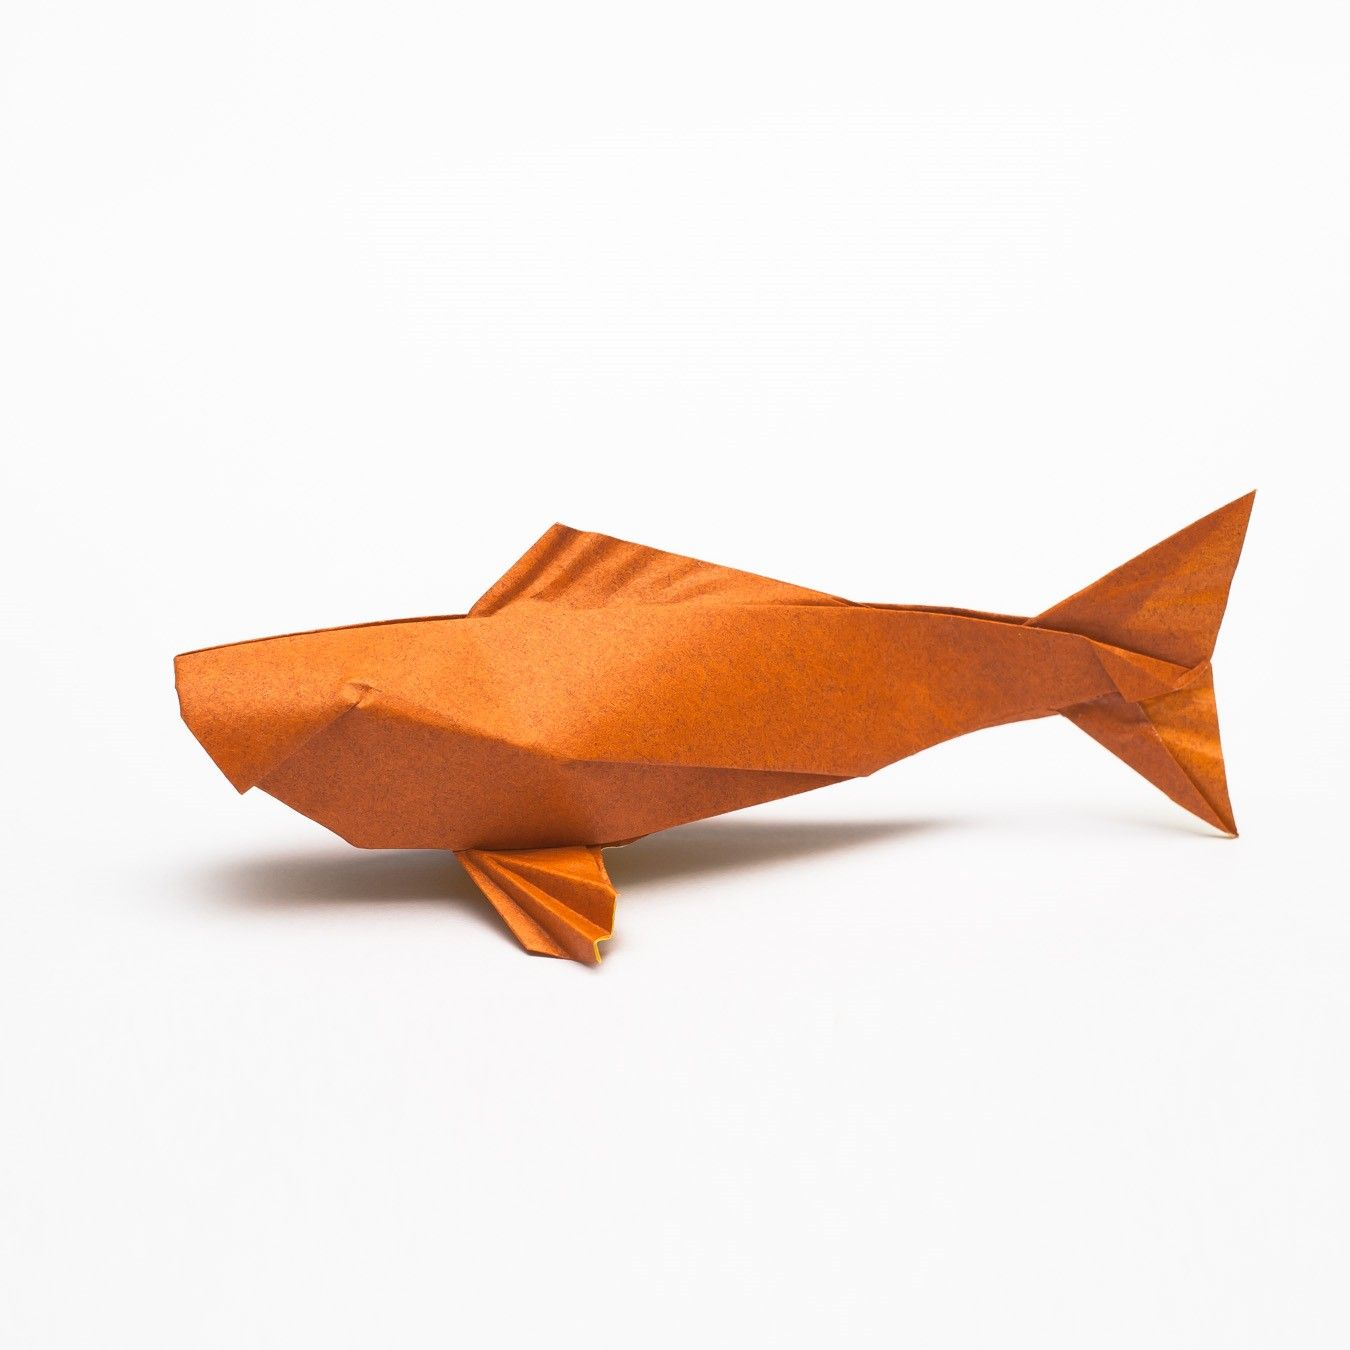 Illustration origami carp origami koi fish figure 2 for Origami koi fish